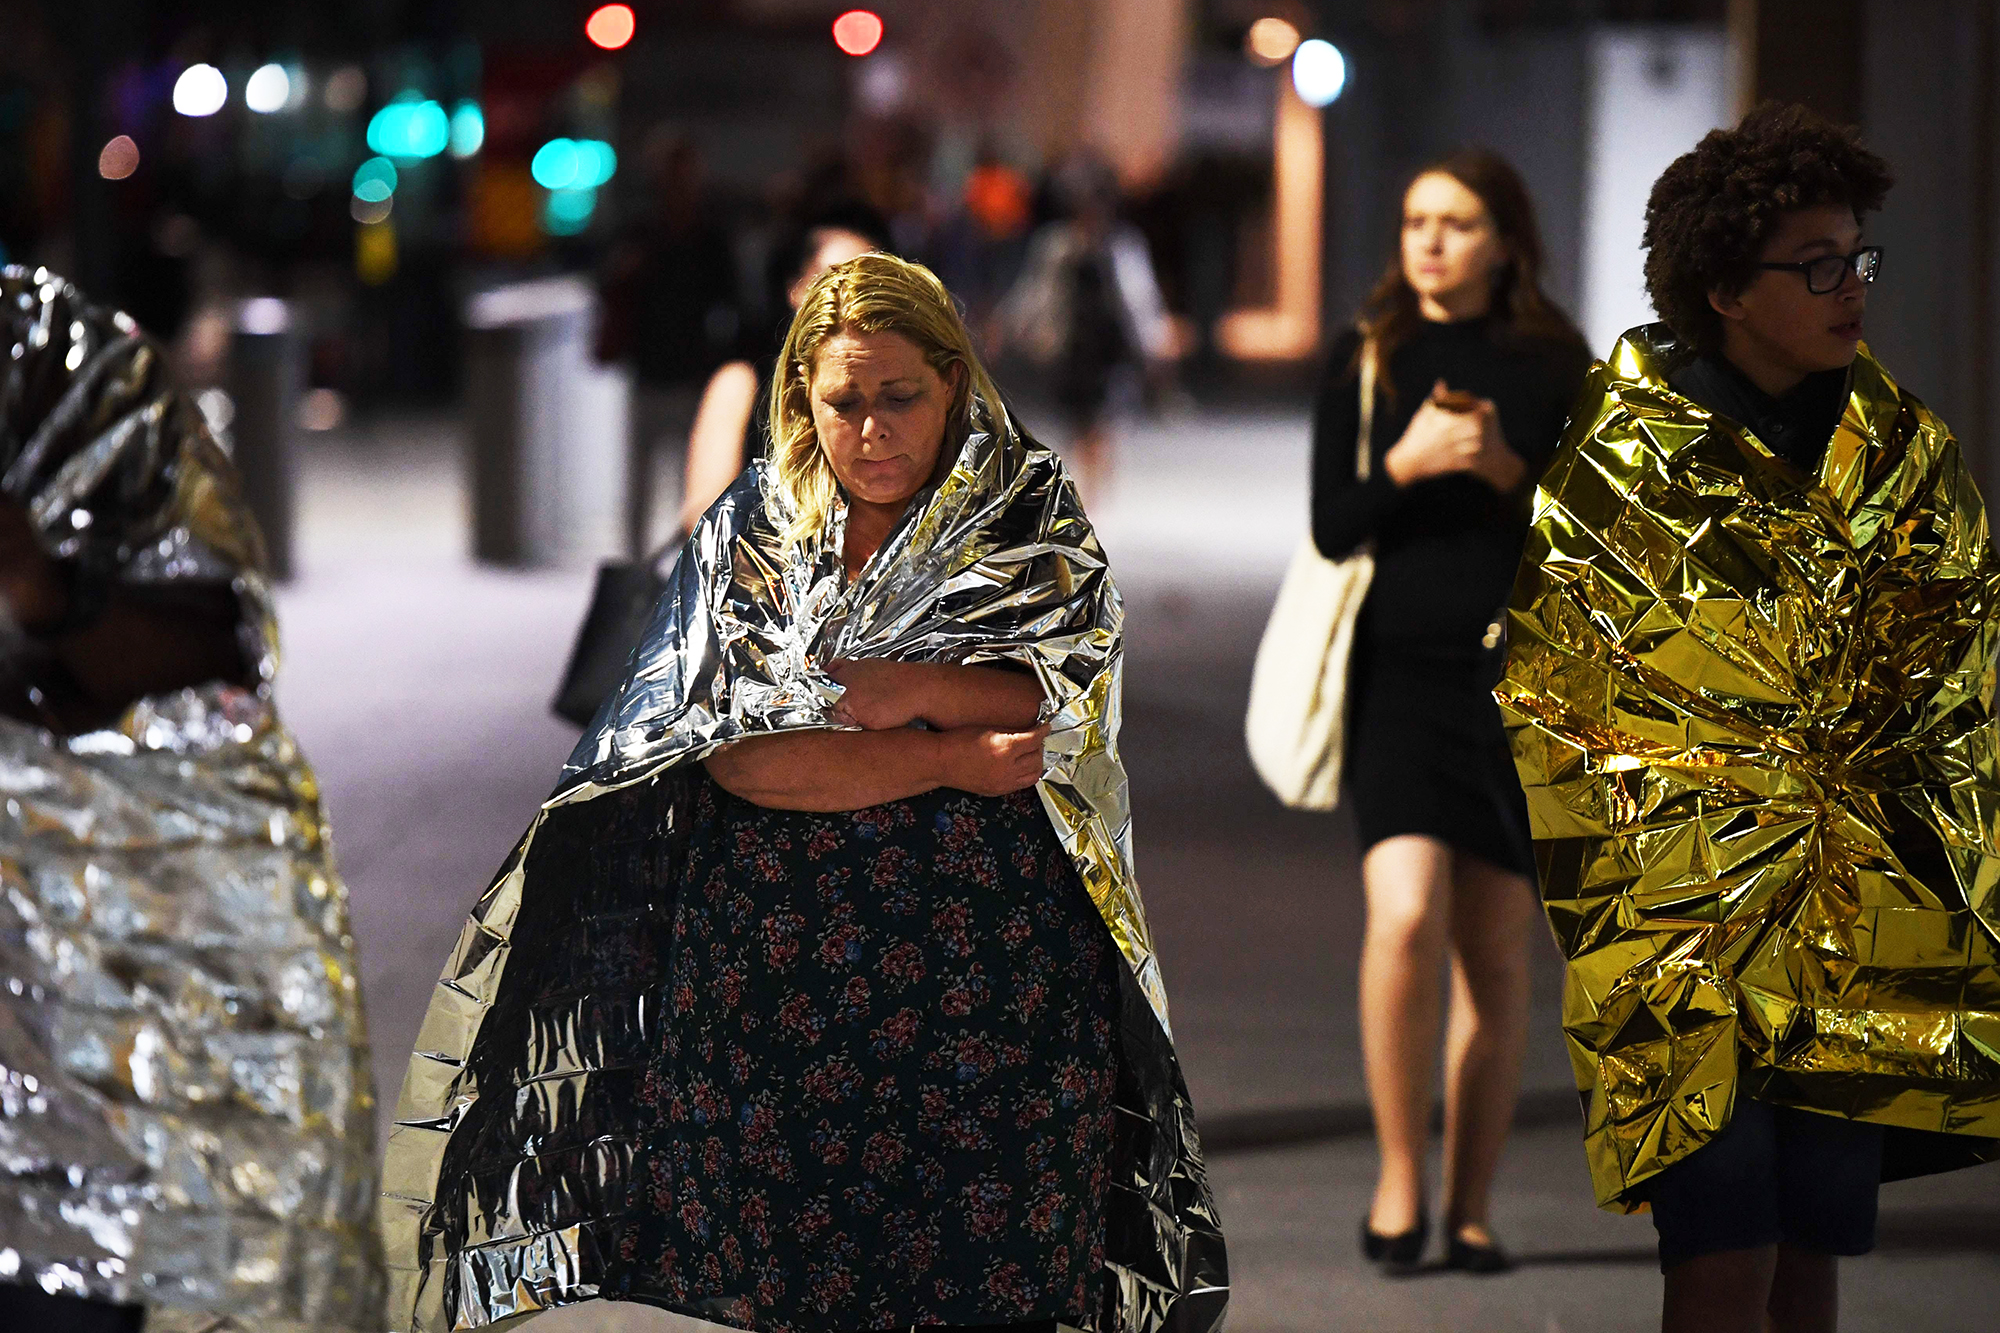 Bystanders, wrapped in emergency blankets leave the scene of a terror attack on London Bridge in central London, on June 3, 2017.